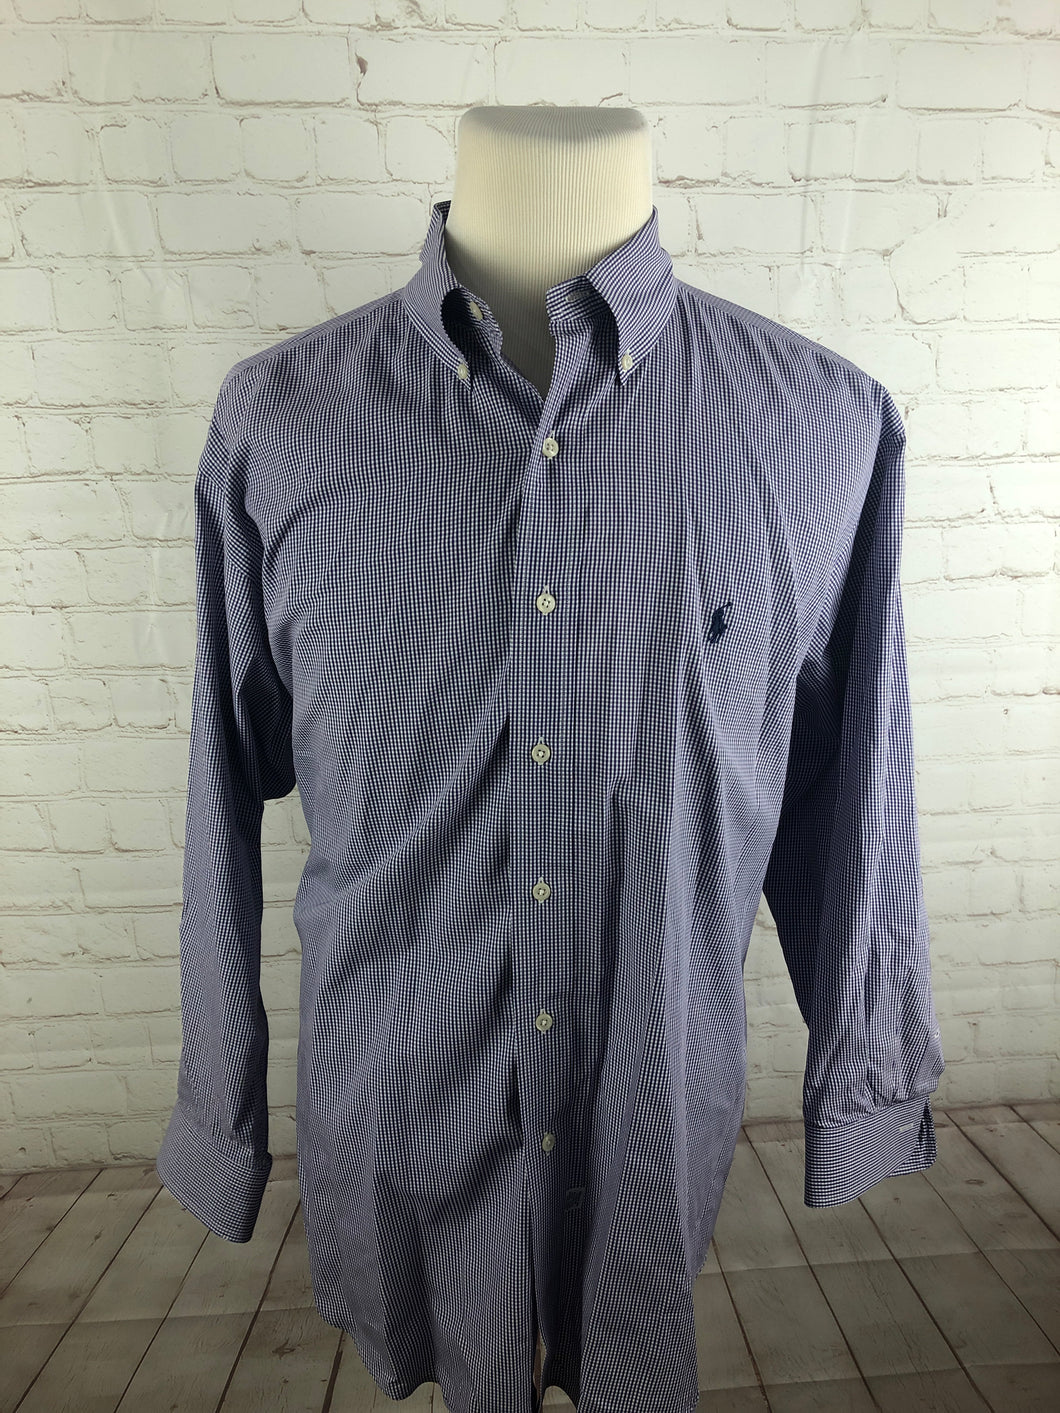 Ralph Lauren Purple Plaid Cotton Dress Shirt Size 17 32/33 $98 - SUIT CHARITY OUTLET